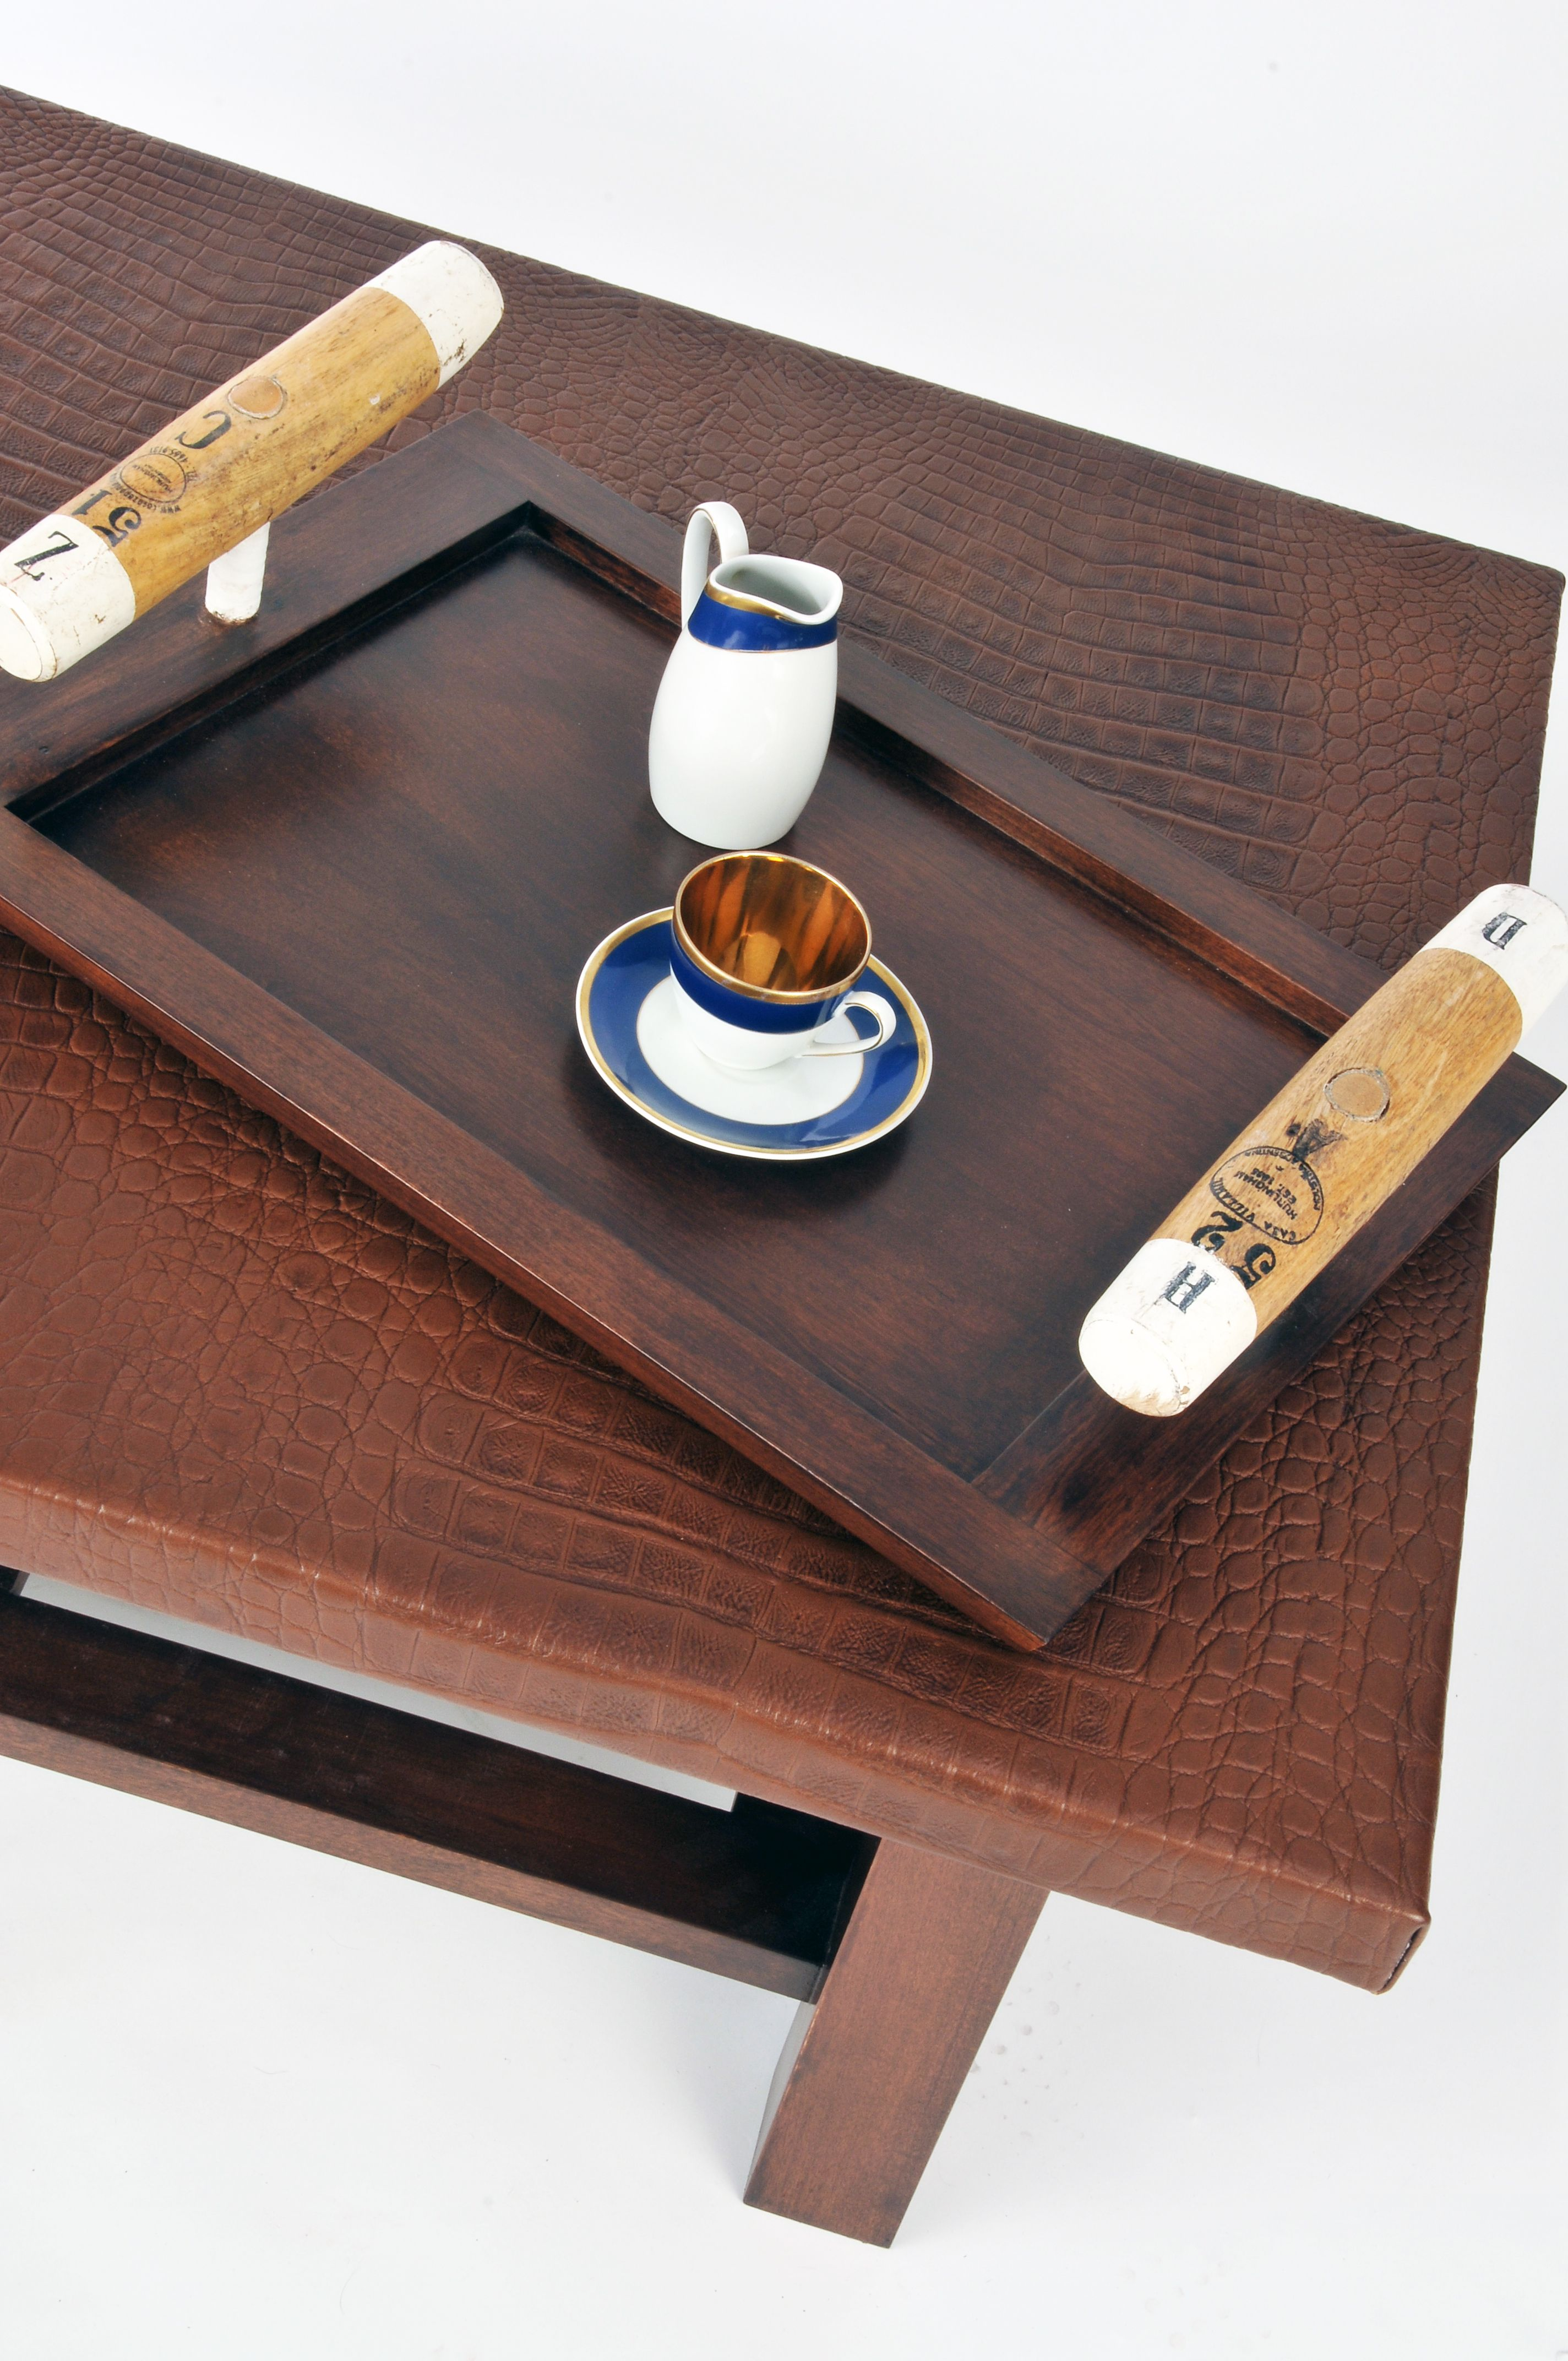 Polo mallet head coffee table tray I want one